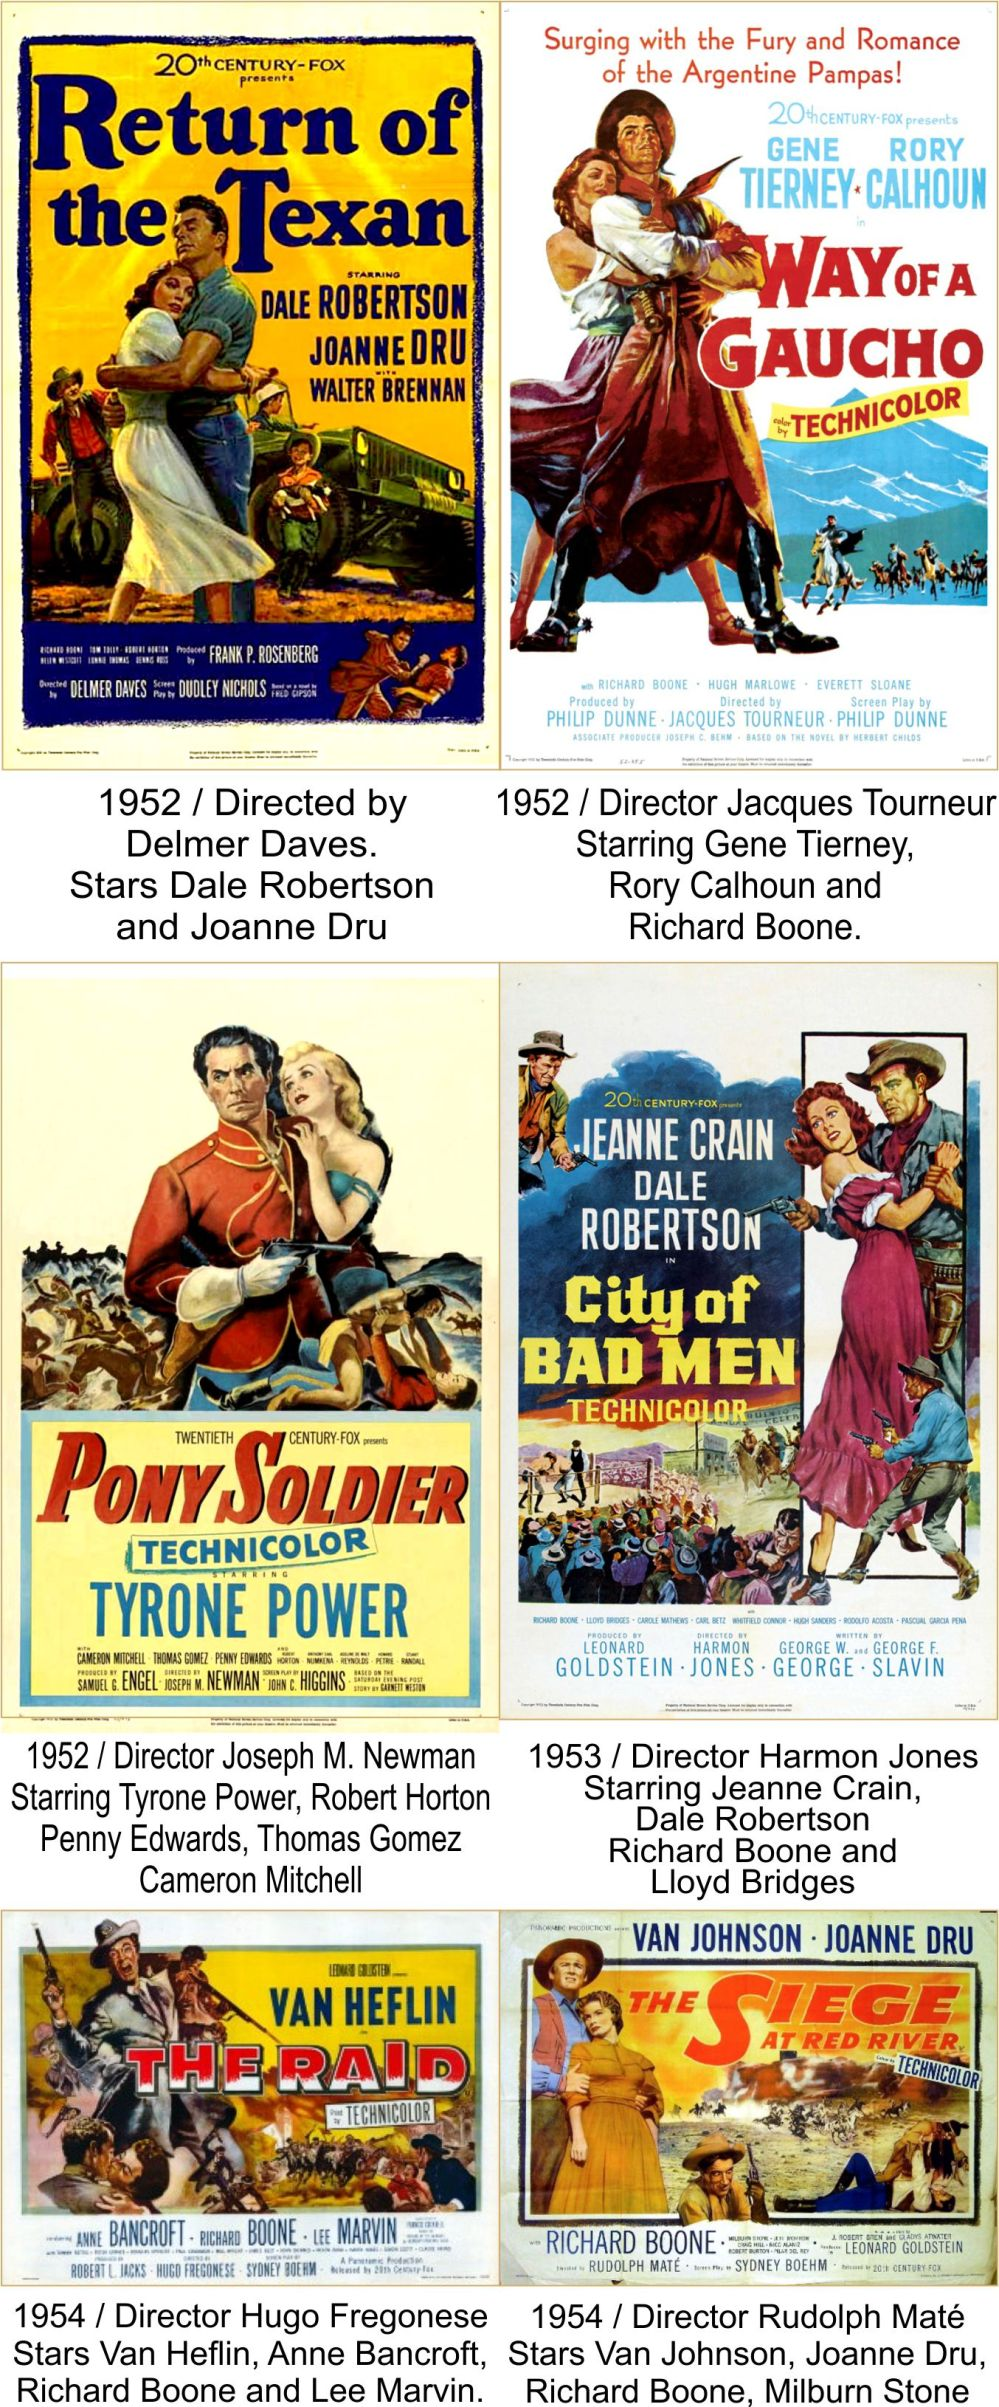 Richard Boone Filmography 1